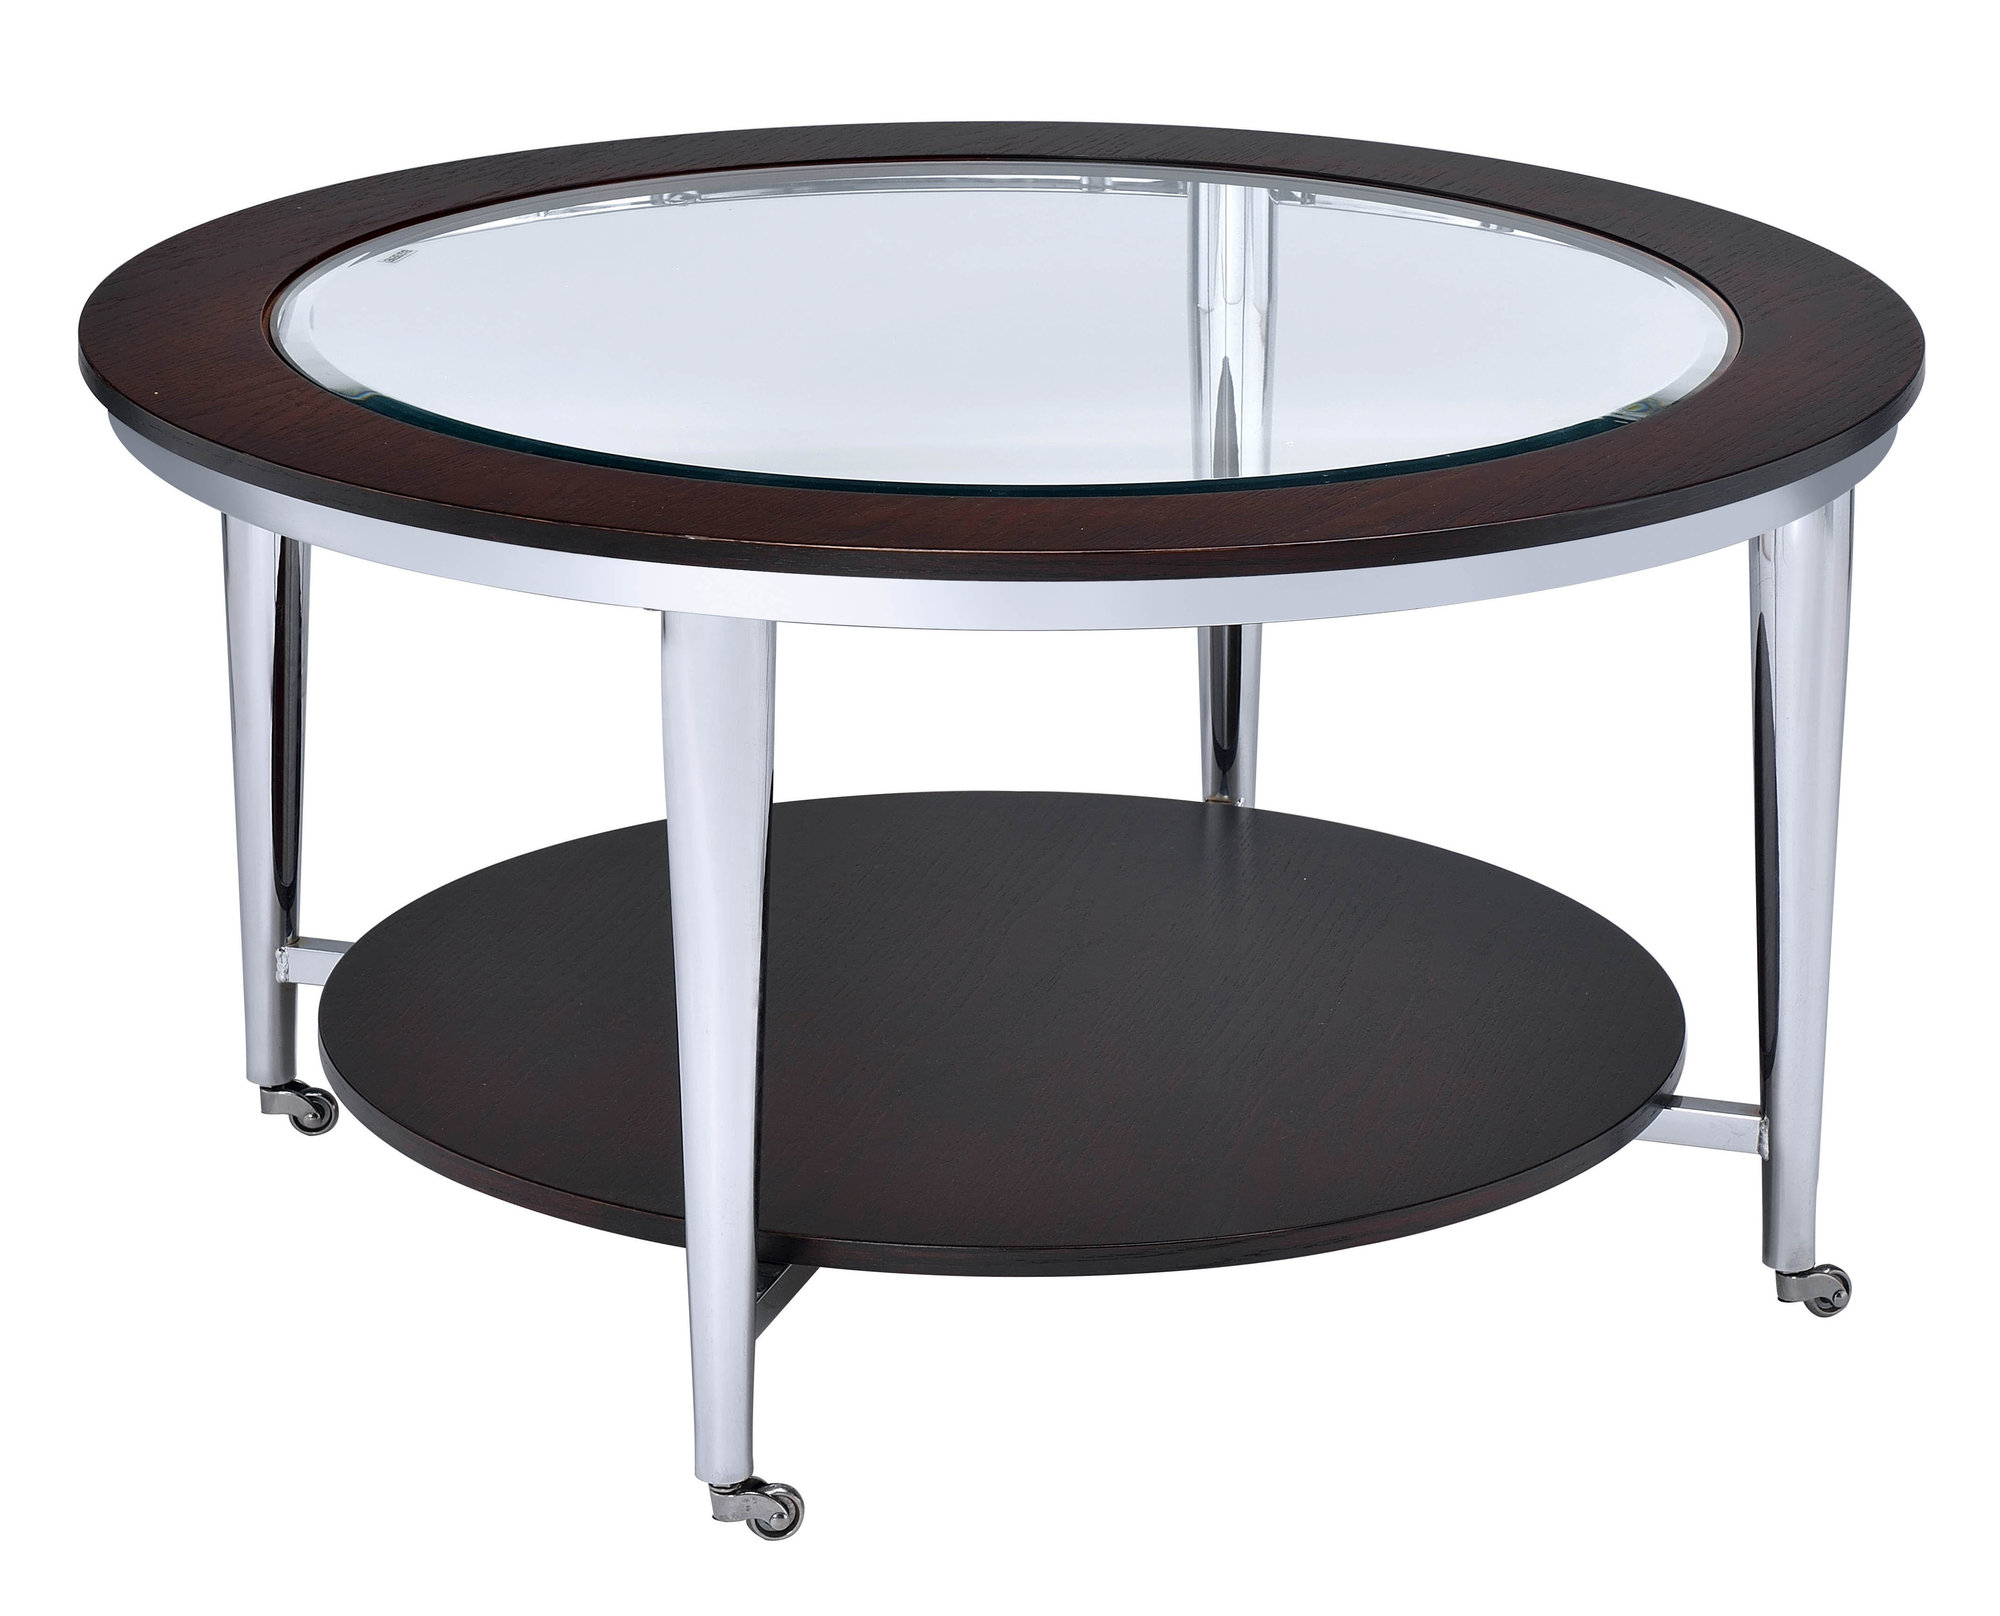 Details About Orren Ellis Lefker Coffee Table With Regard To Favorite Cortesi Home Remi Contemporary Chrome Glass Coffee Tables (View 9 of 20)